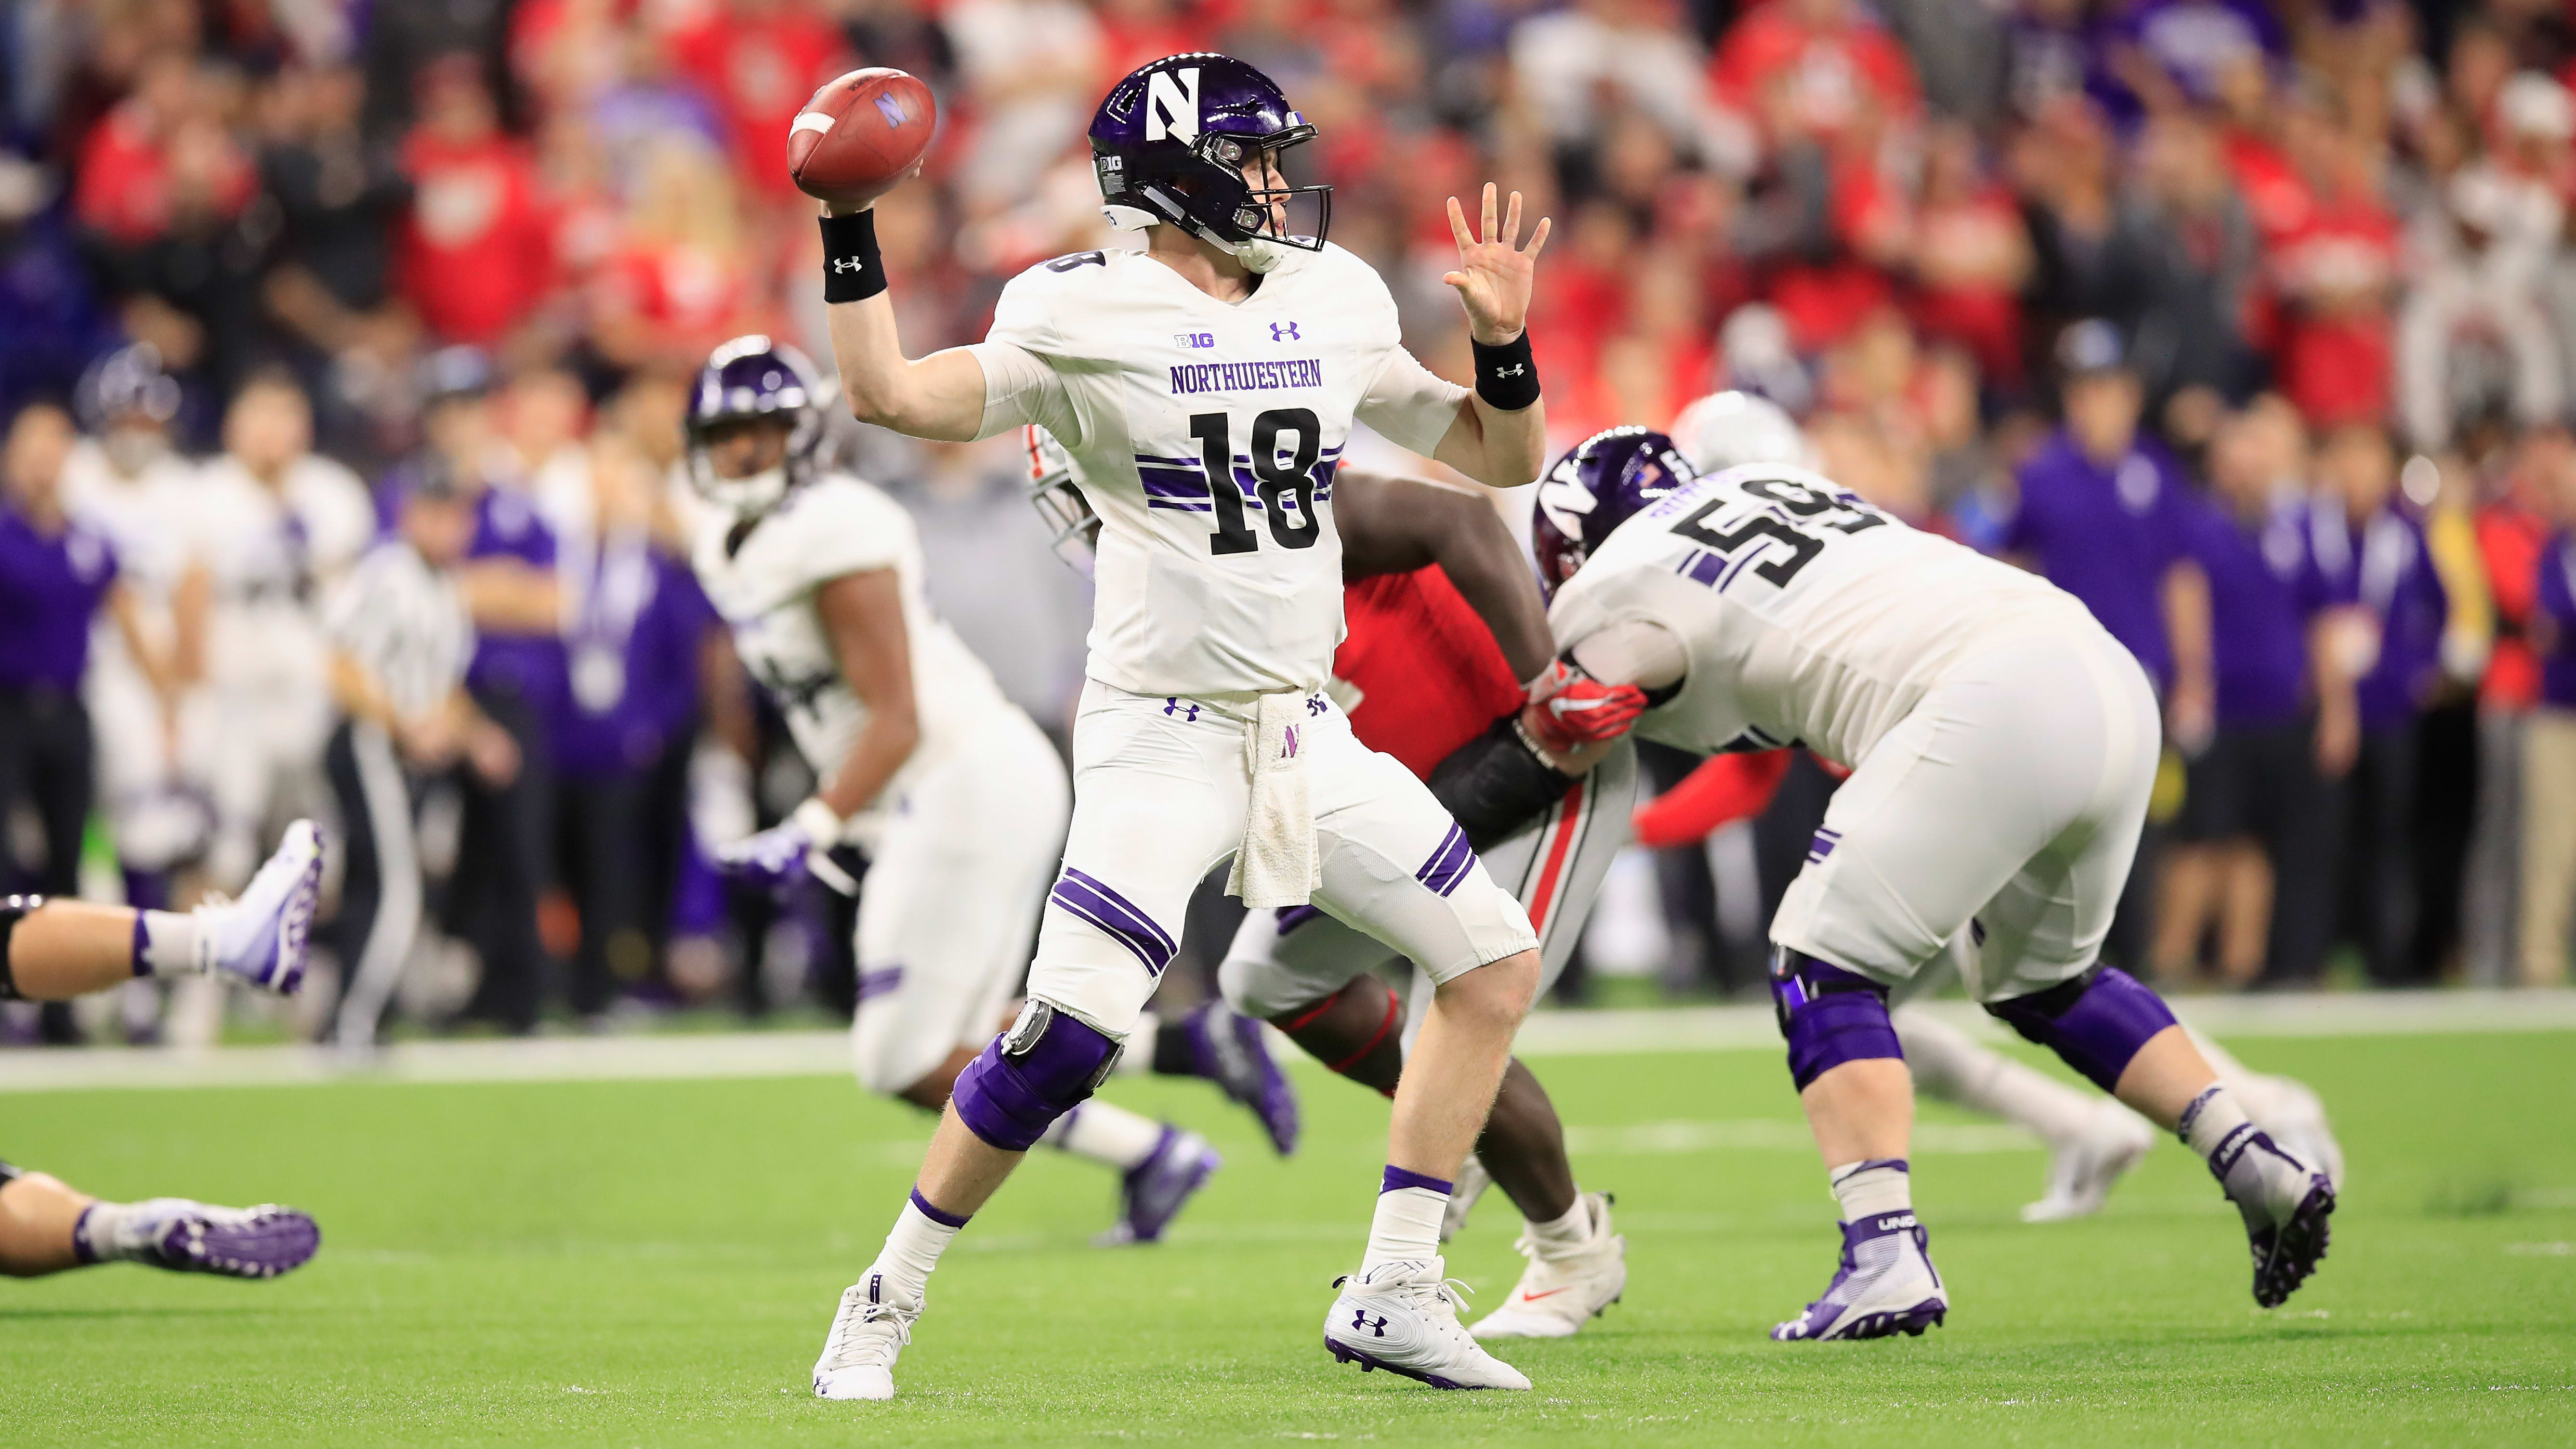 Clayton Thorson NFL Scouting Report, Draft Profile and Projection